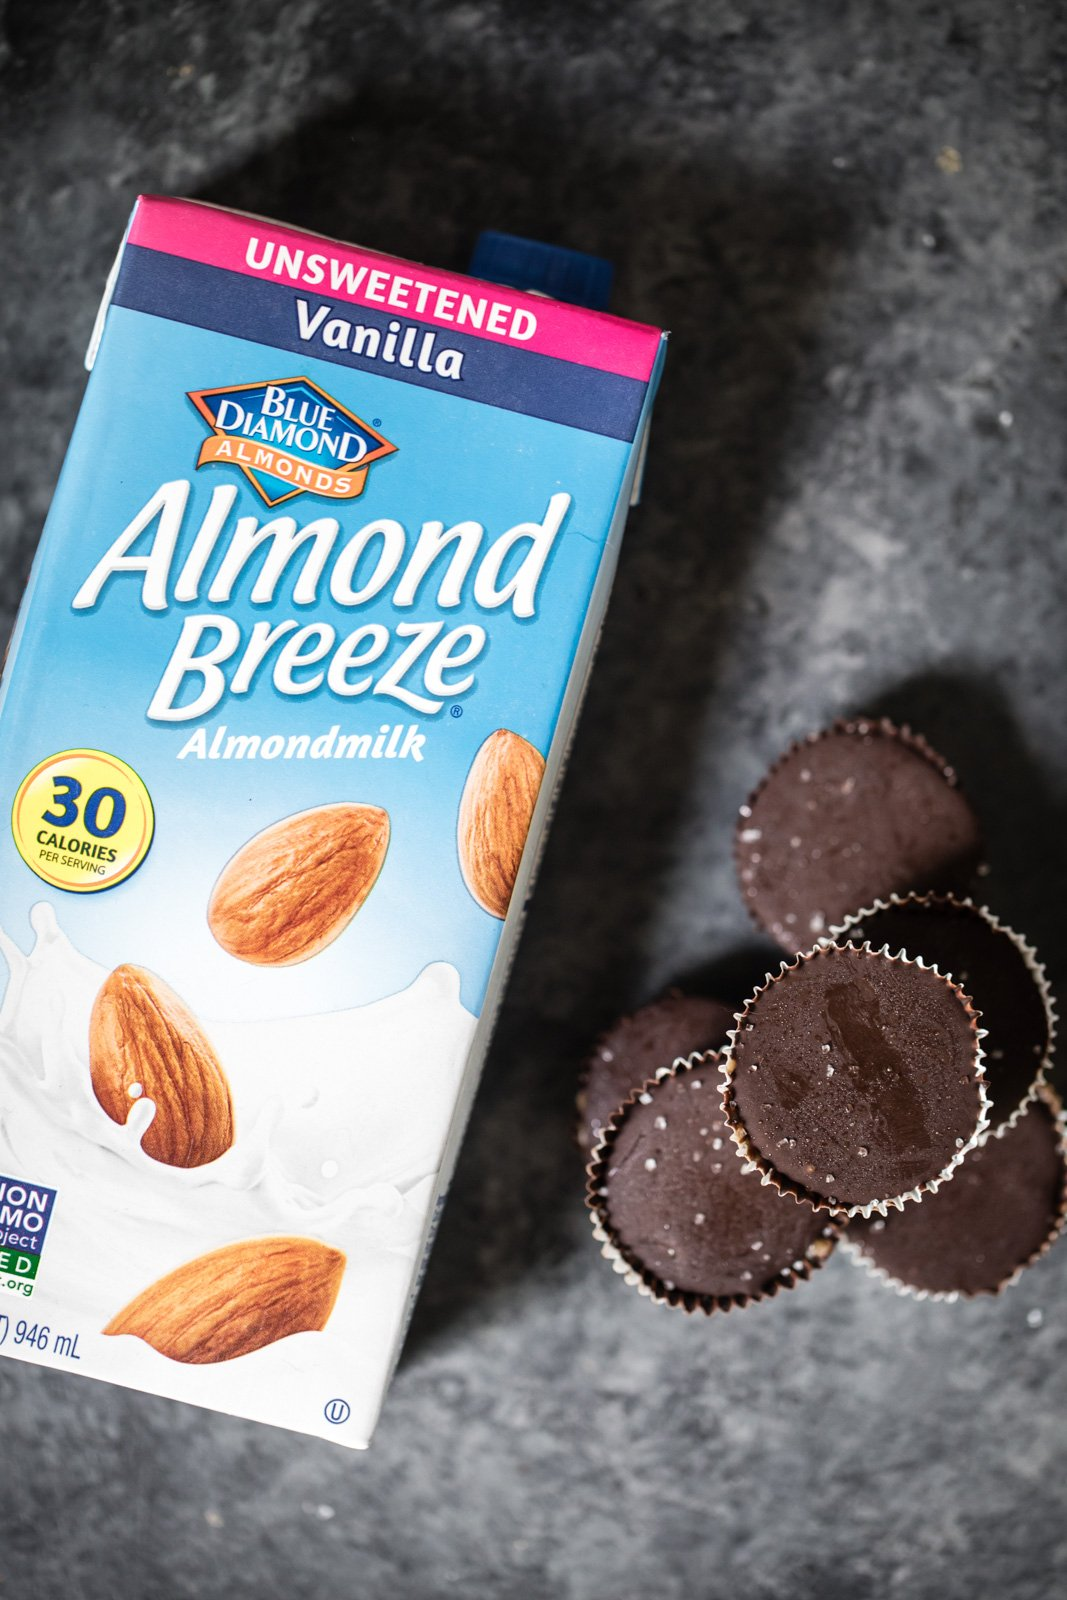 a carton of almond breeze almond milk next to vegan cookie dough cups